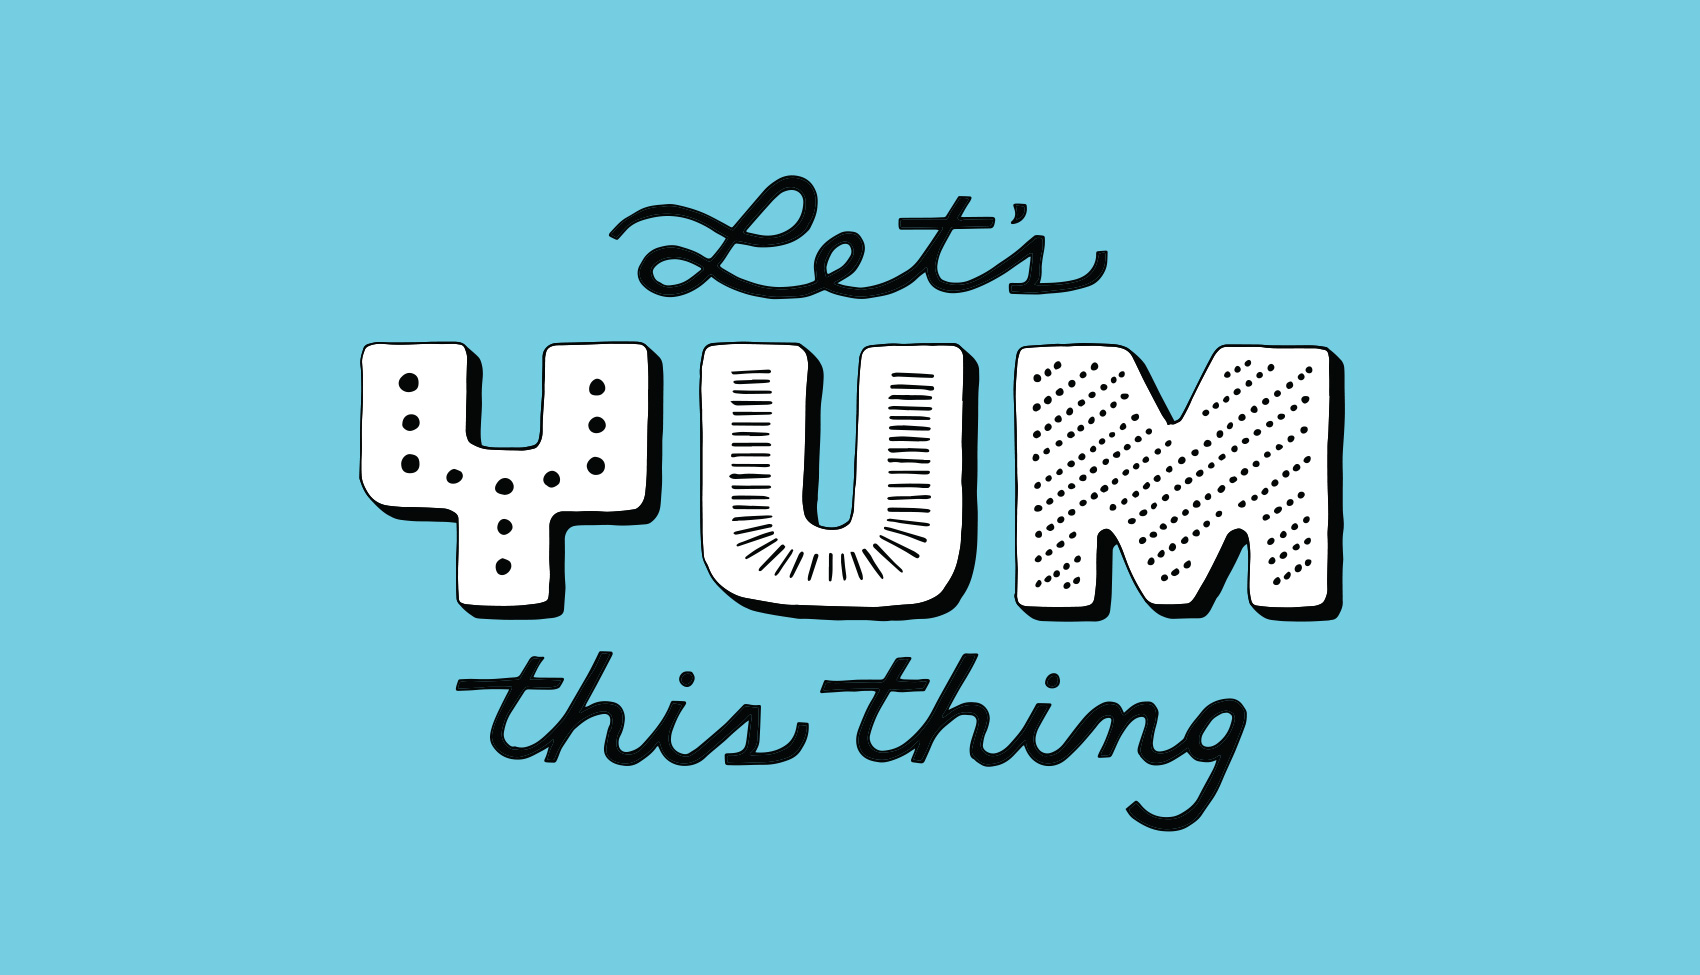 Let's Yum This Thing - rallying cry in hand lettered typography for Tofurky.